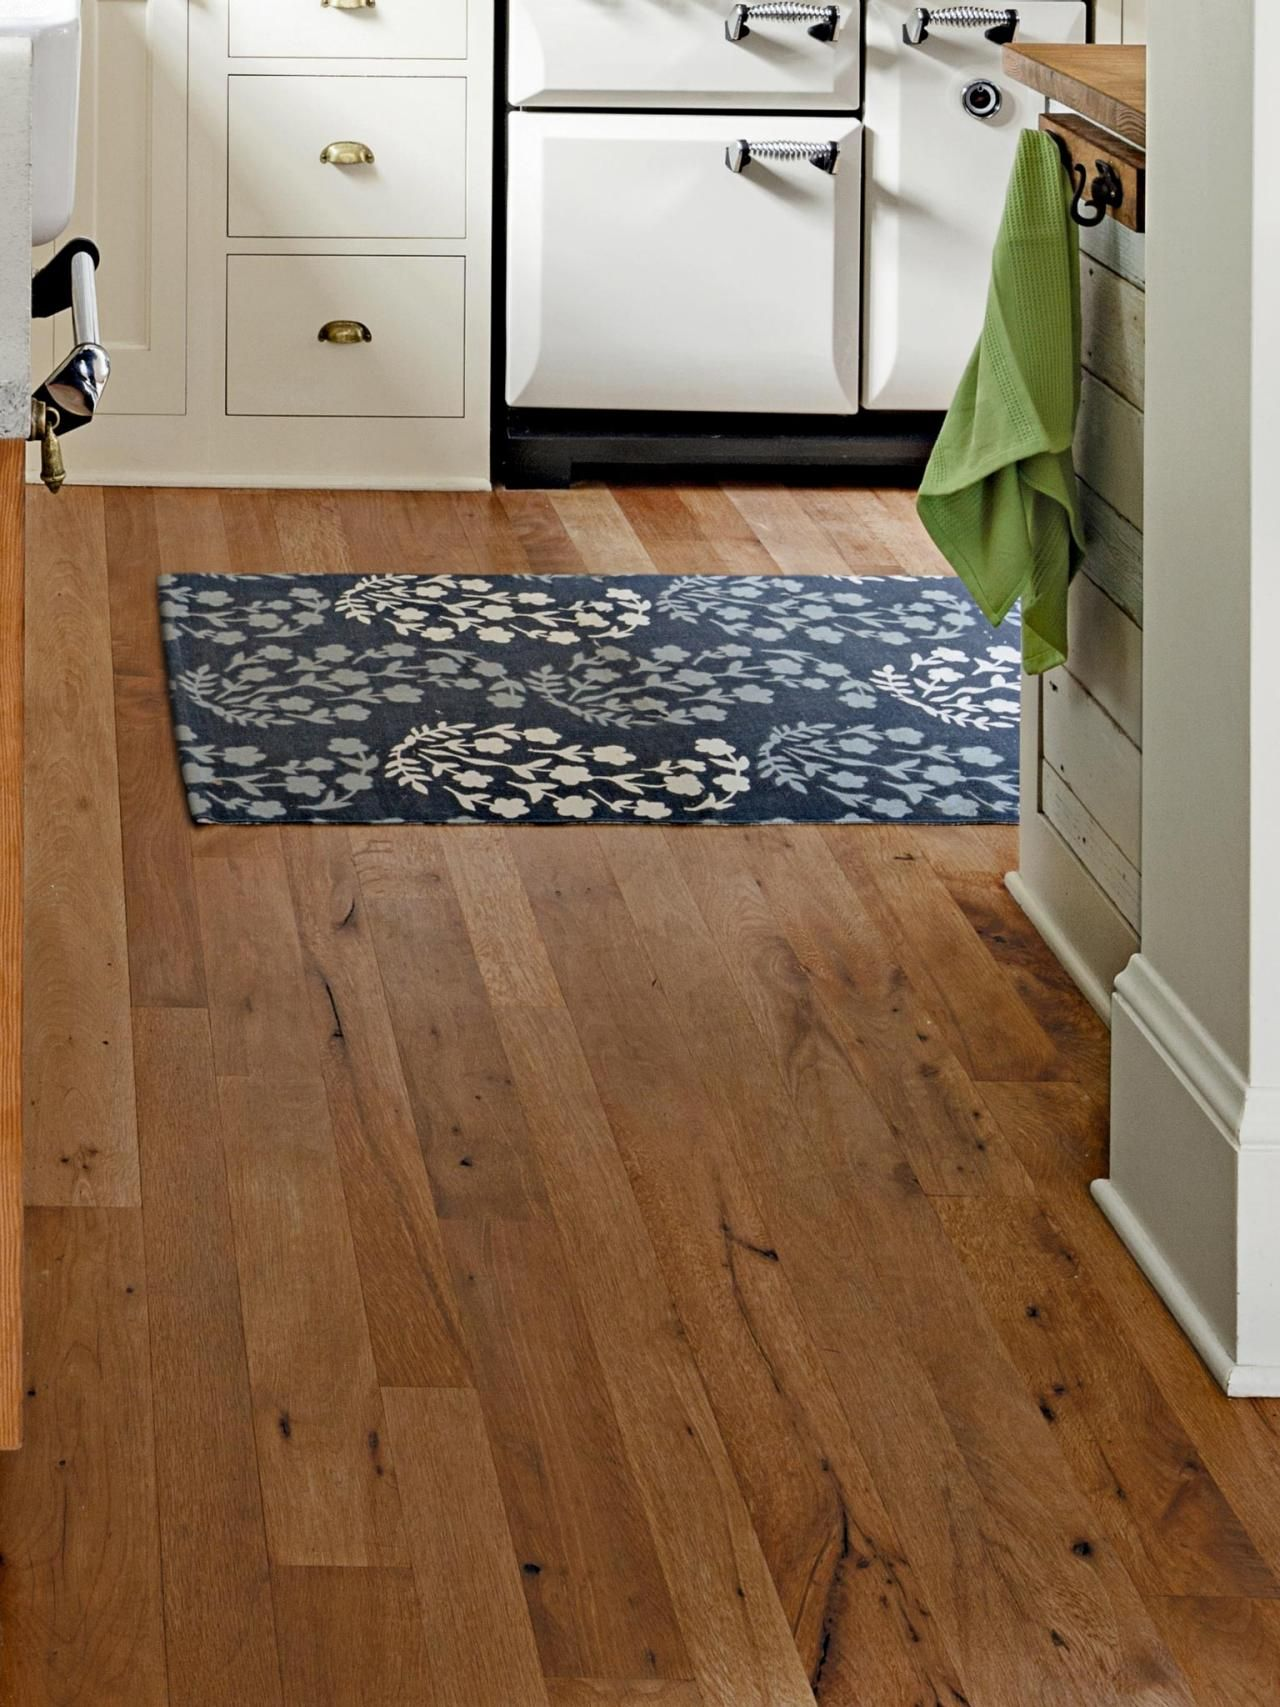 Go Green With a Recycled Kitchen Steam mop Ranges and Woods